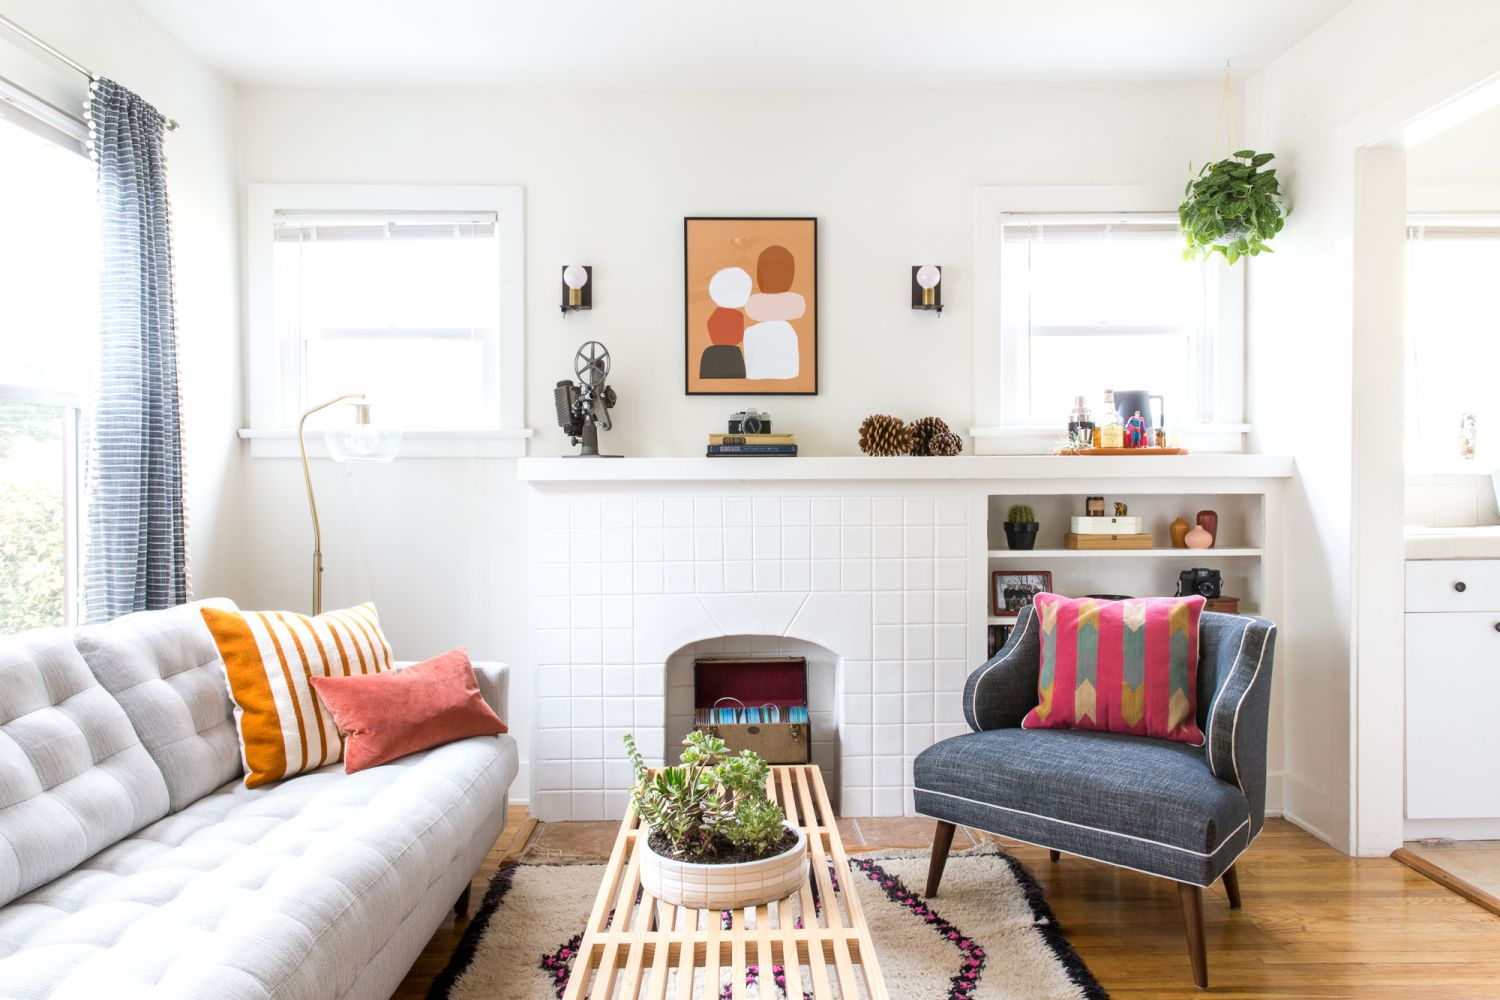 House tour: a colorful california bachelor pad apartment therapy